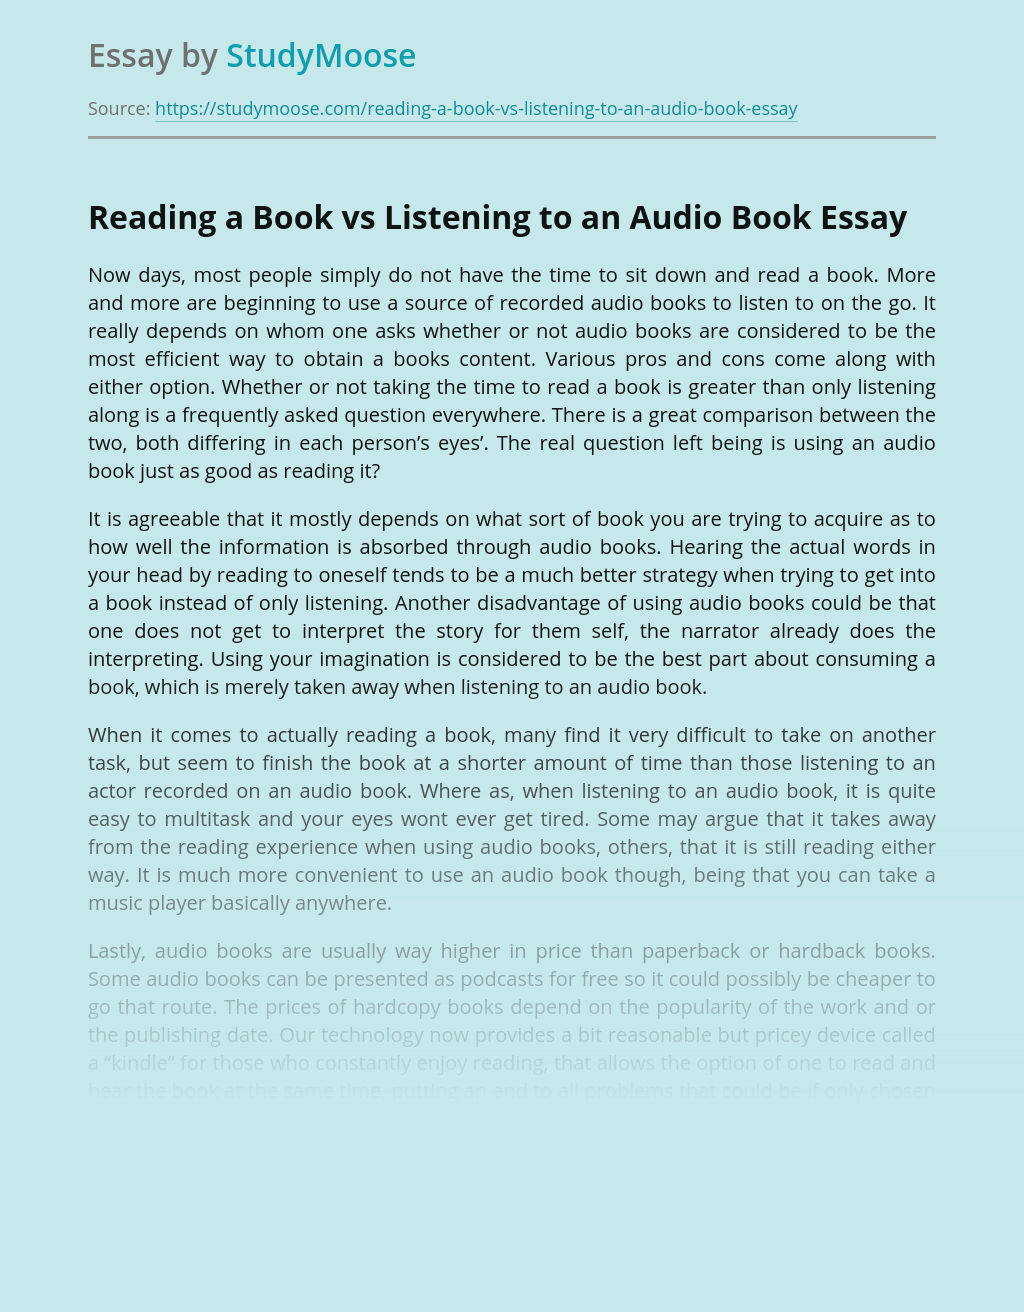 Reading a Book vs Listening to an Audio Book